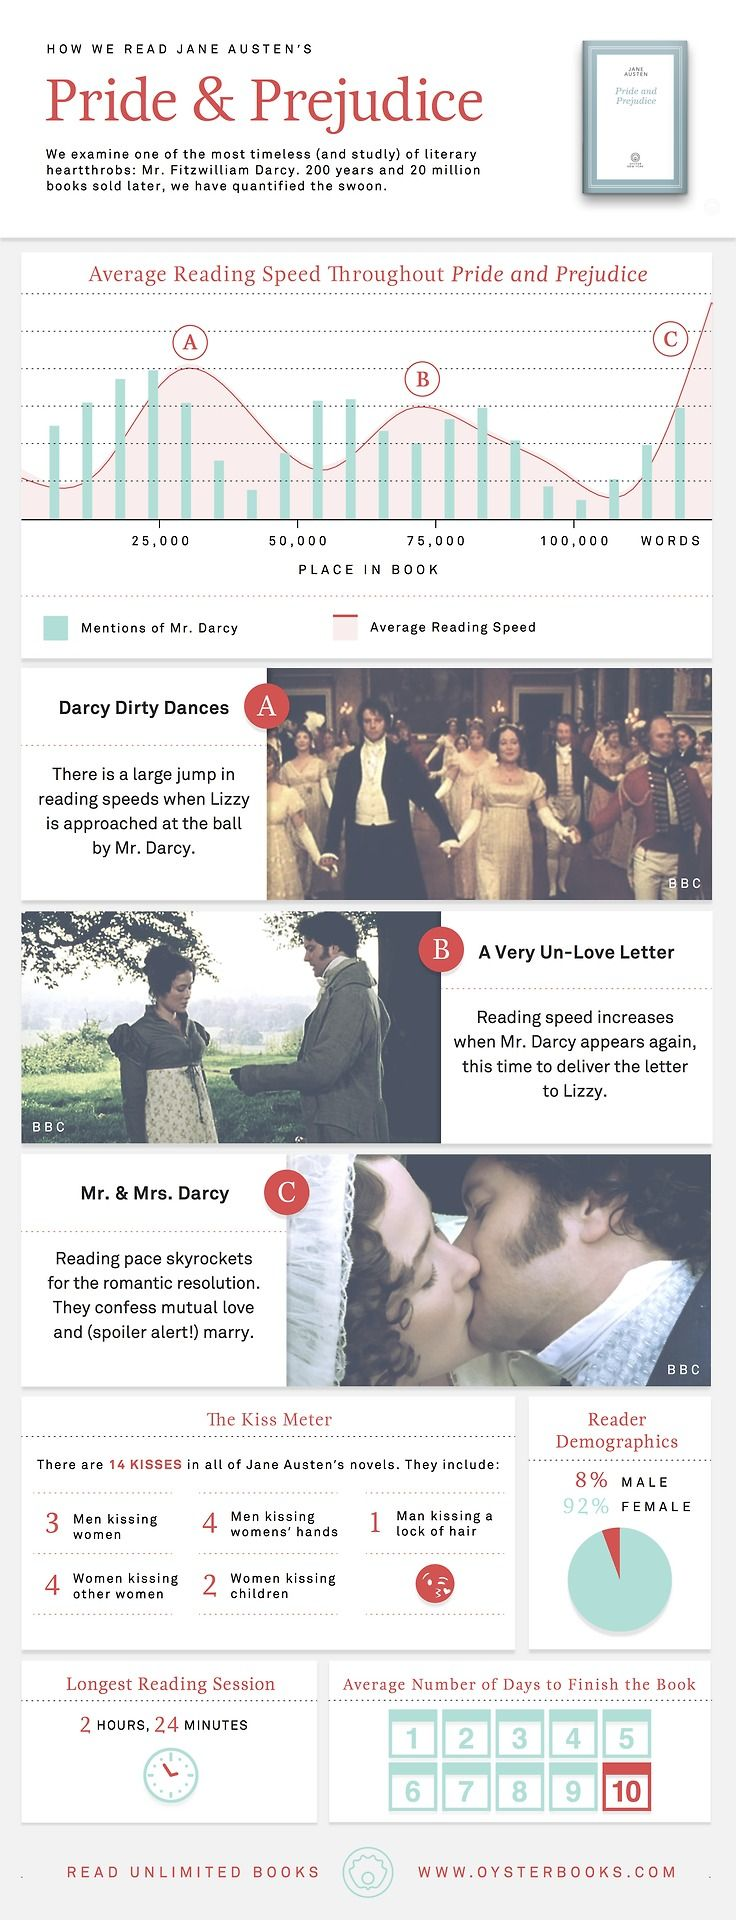 top ideas about pride and prejudice plot pride the data revealed three periods of especially speedy reading that correlate directly heightened moments in the plot and also perhaps predictably